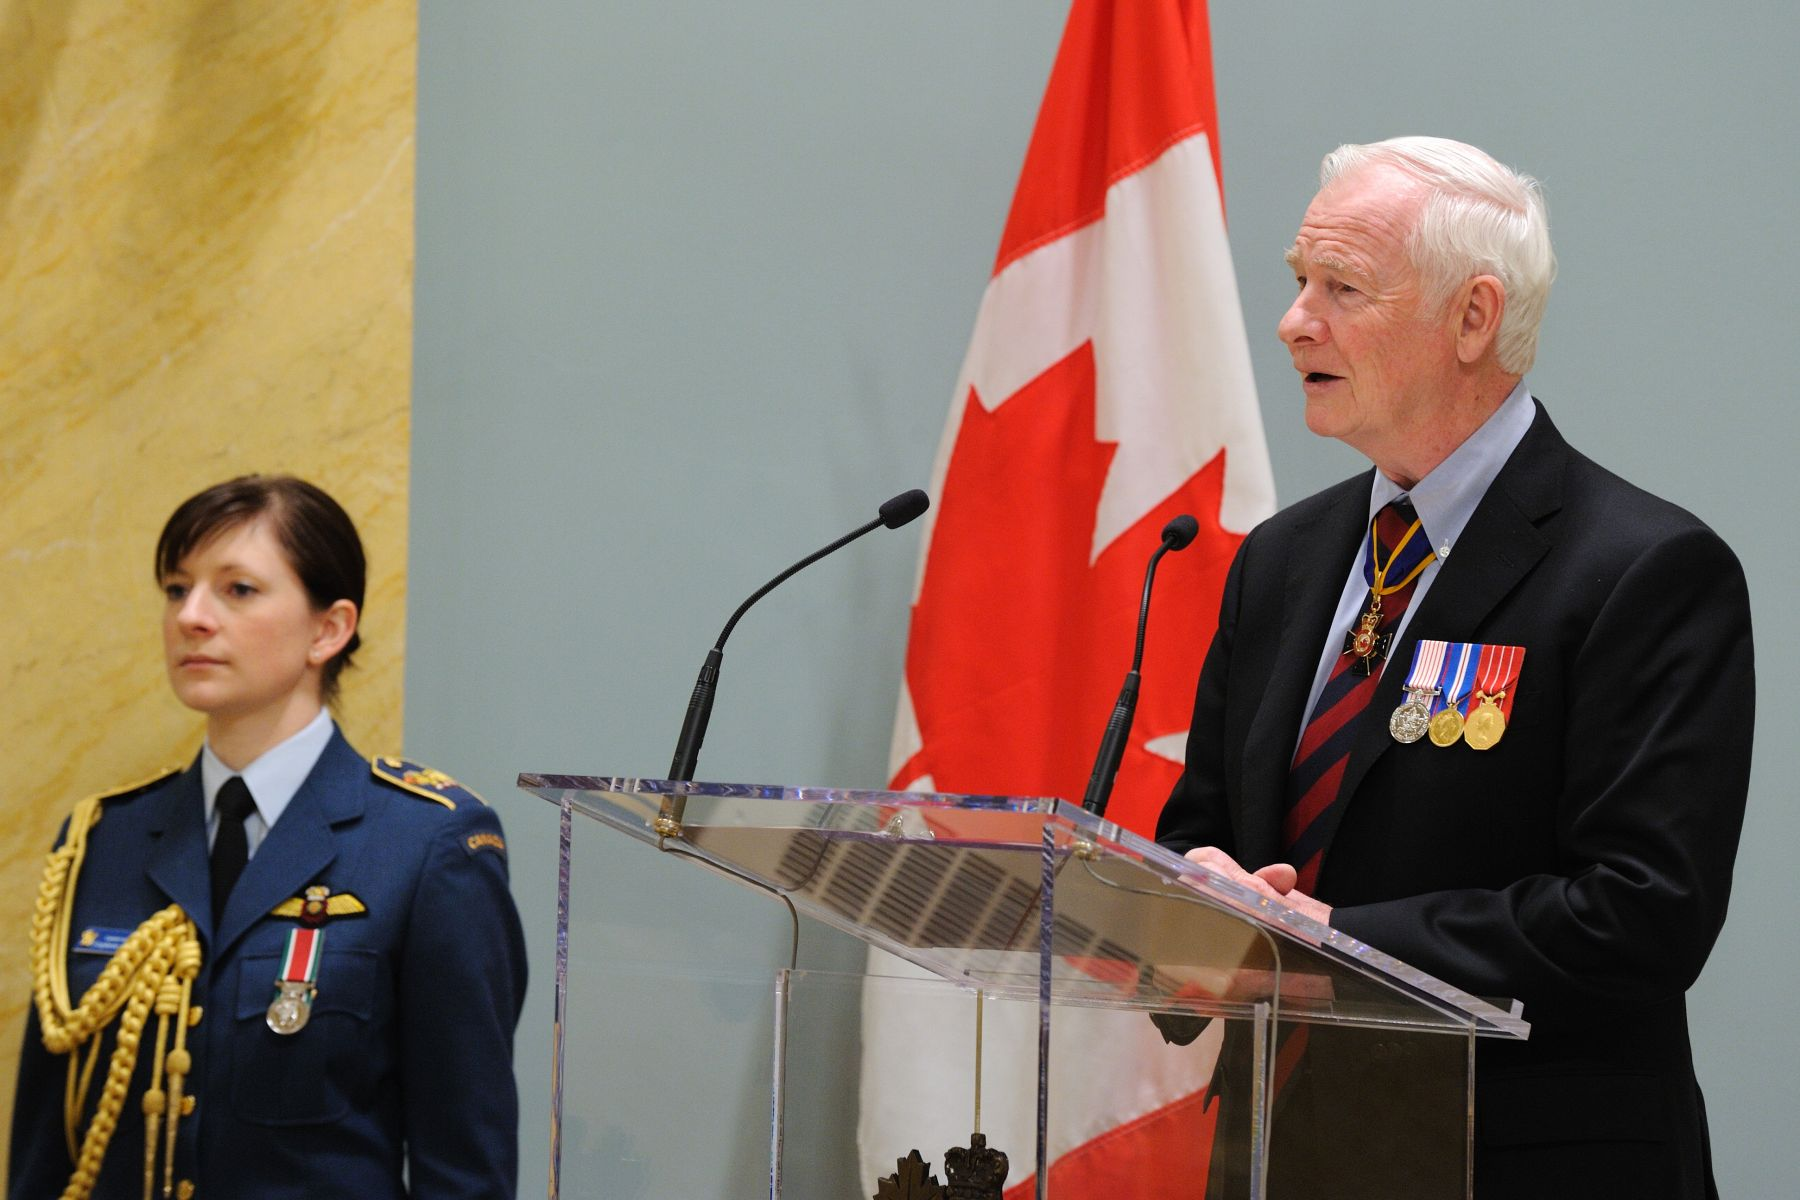 """Each of you has shown great courage and determination in the face of seemingly overwhelming odds,"" said His Excellency. ""You have tackled challenges of global importance. You have contributed greatly to the safety of people at home and abroad. And you have played an essential role in shaping how the Canadian Forces are perceived."""